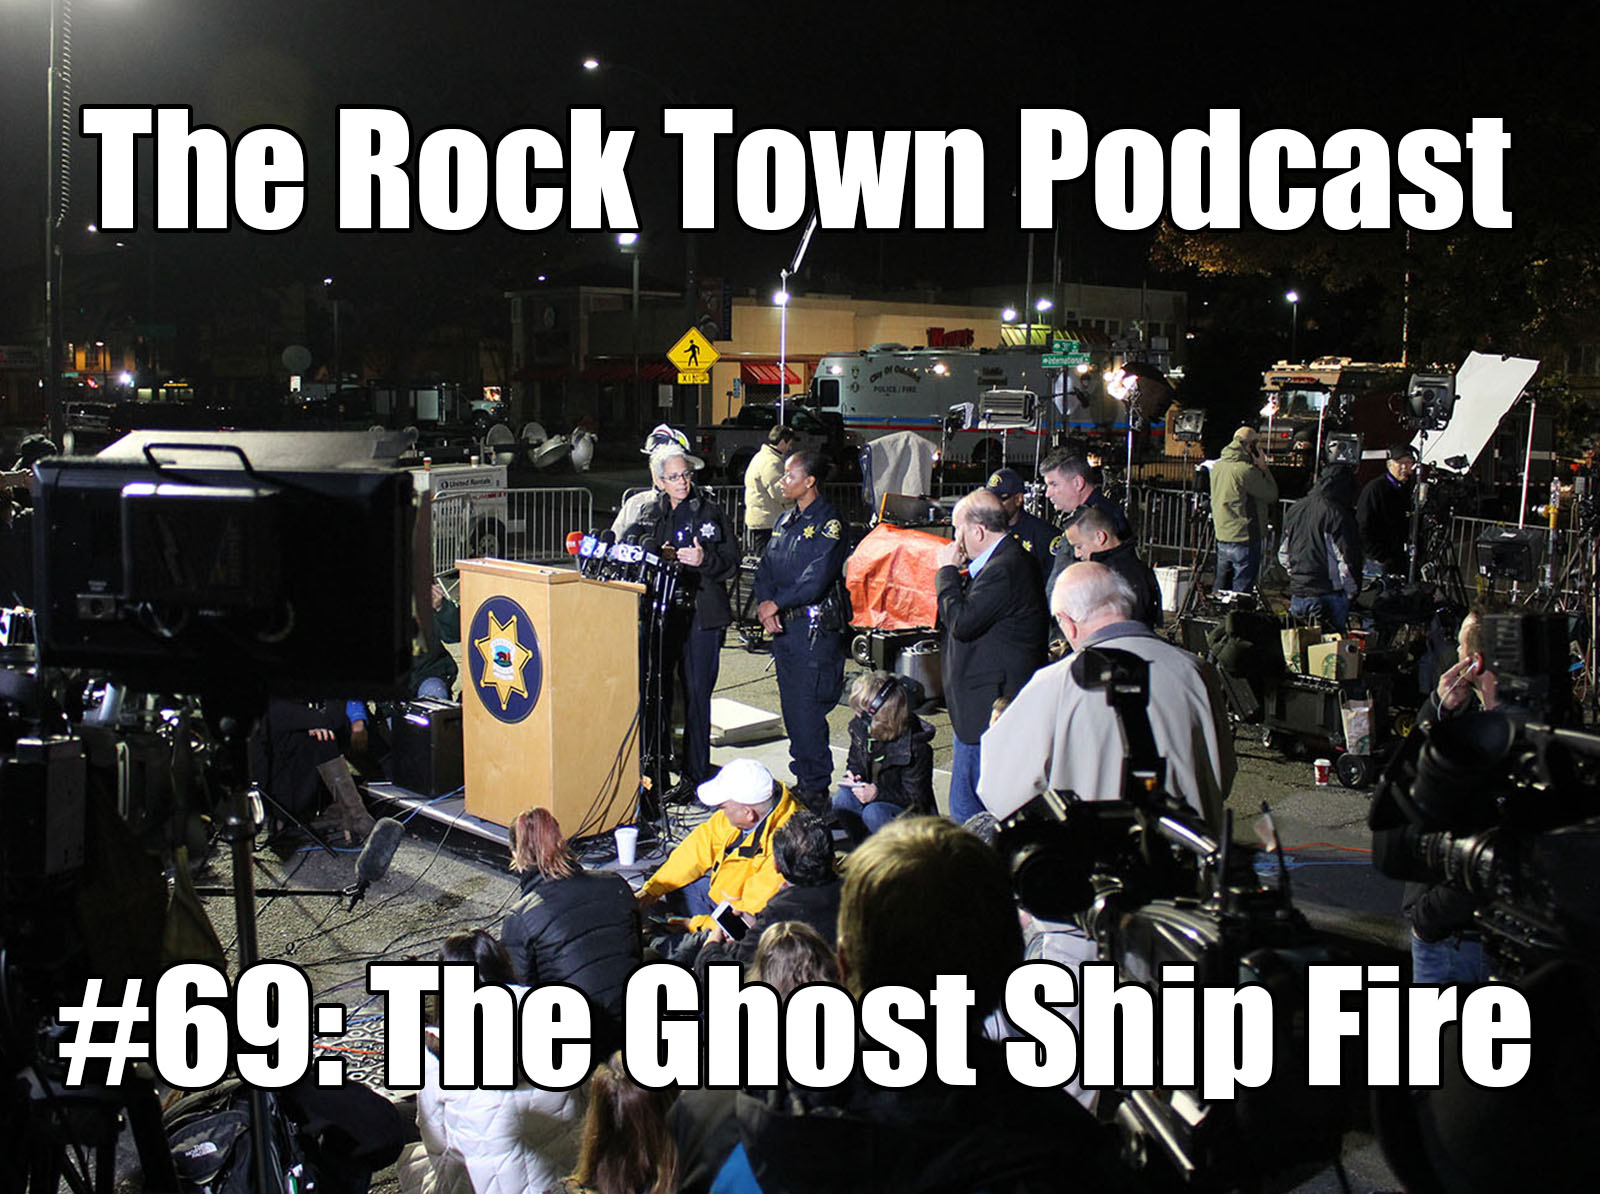 #69: The Ghost Ship Fire